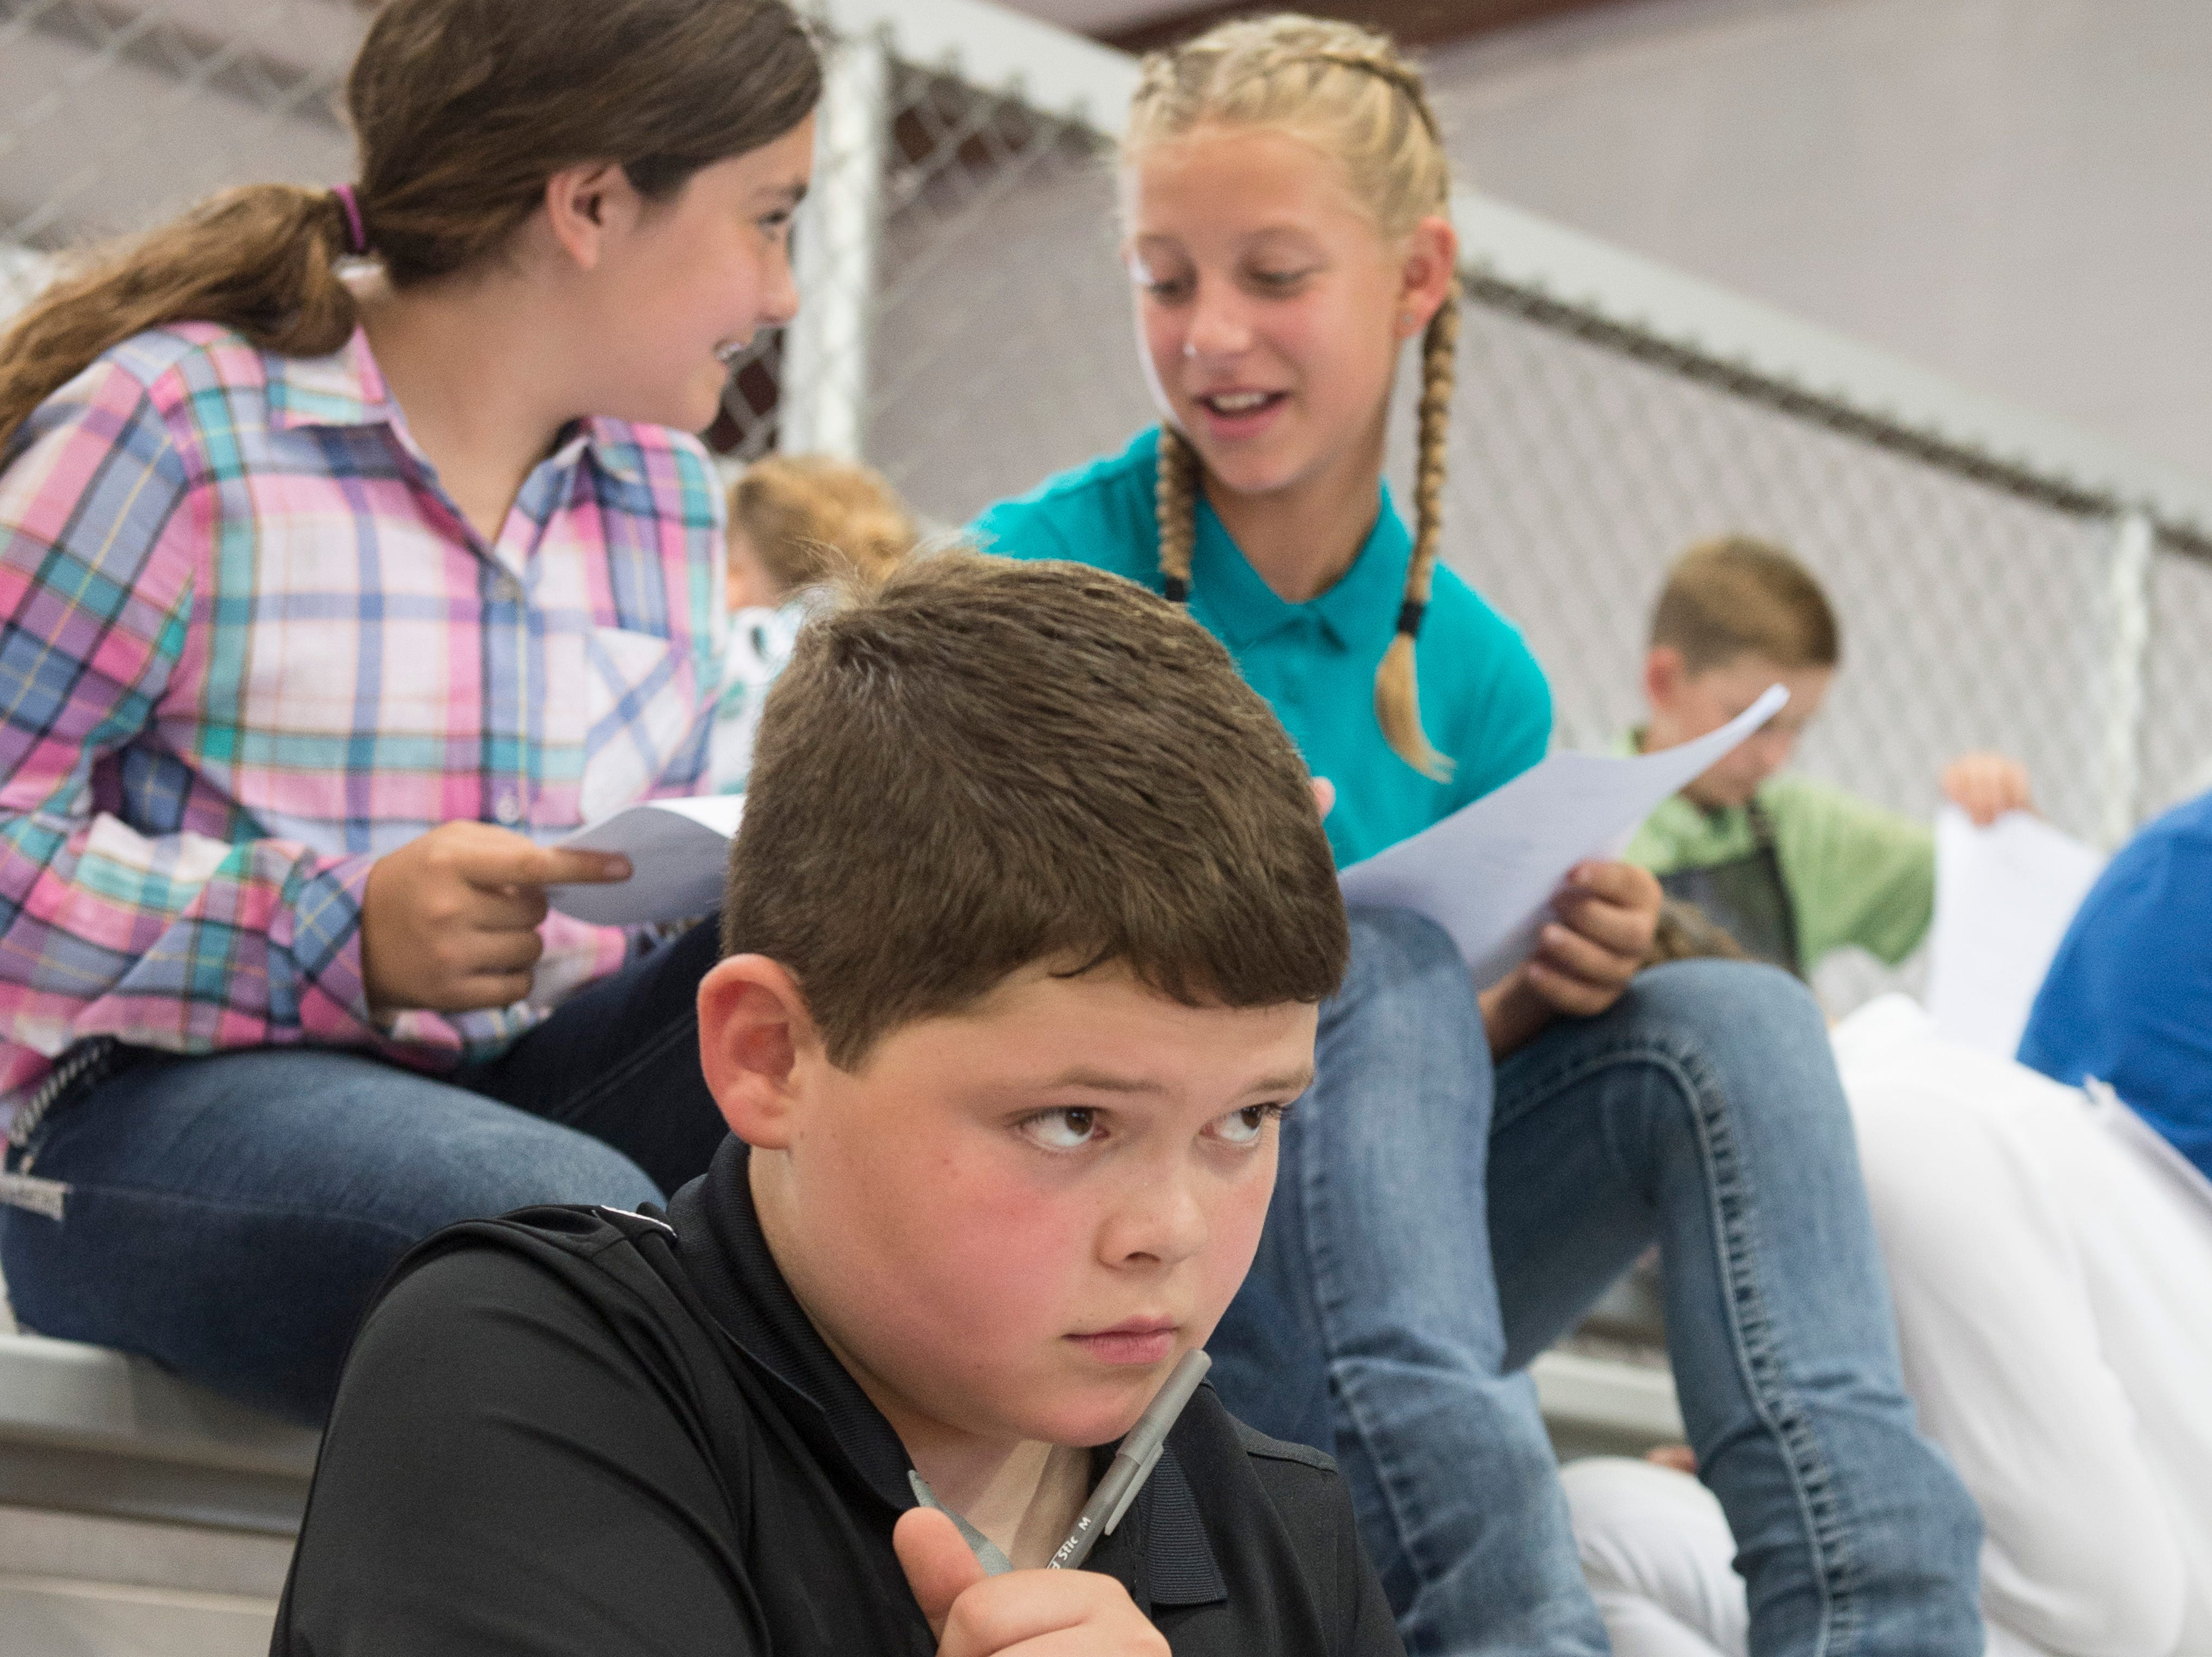 Hayden Good pauses for a moment during the written swine exam during the Showman of Showmen Contest in Large Animals at the Ross County Fair on August 10, 2018, in Chillicothe, Ohio.